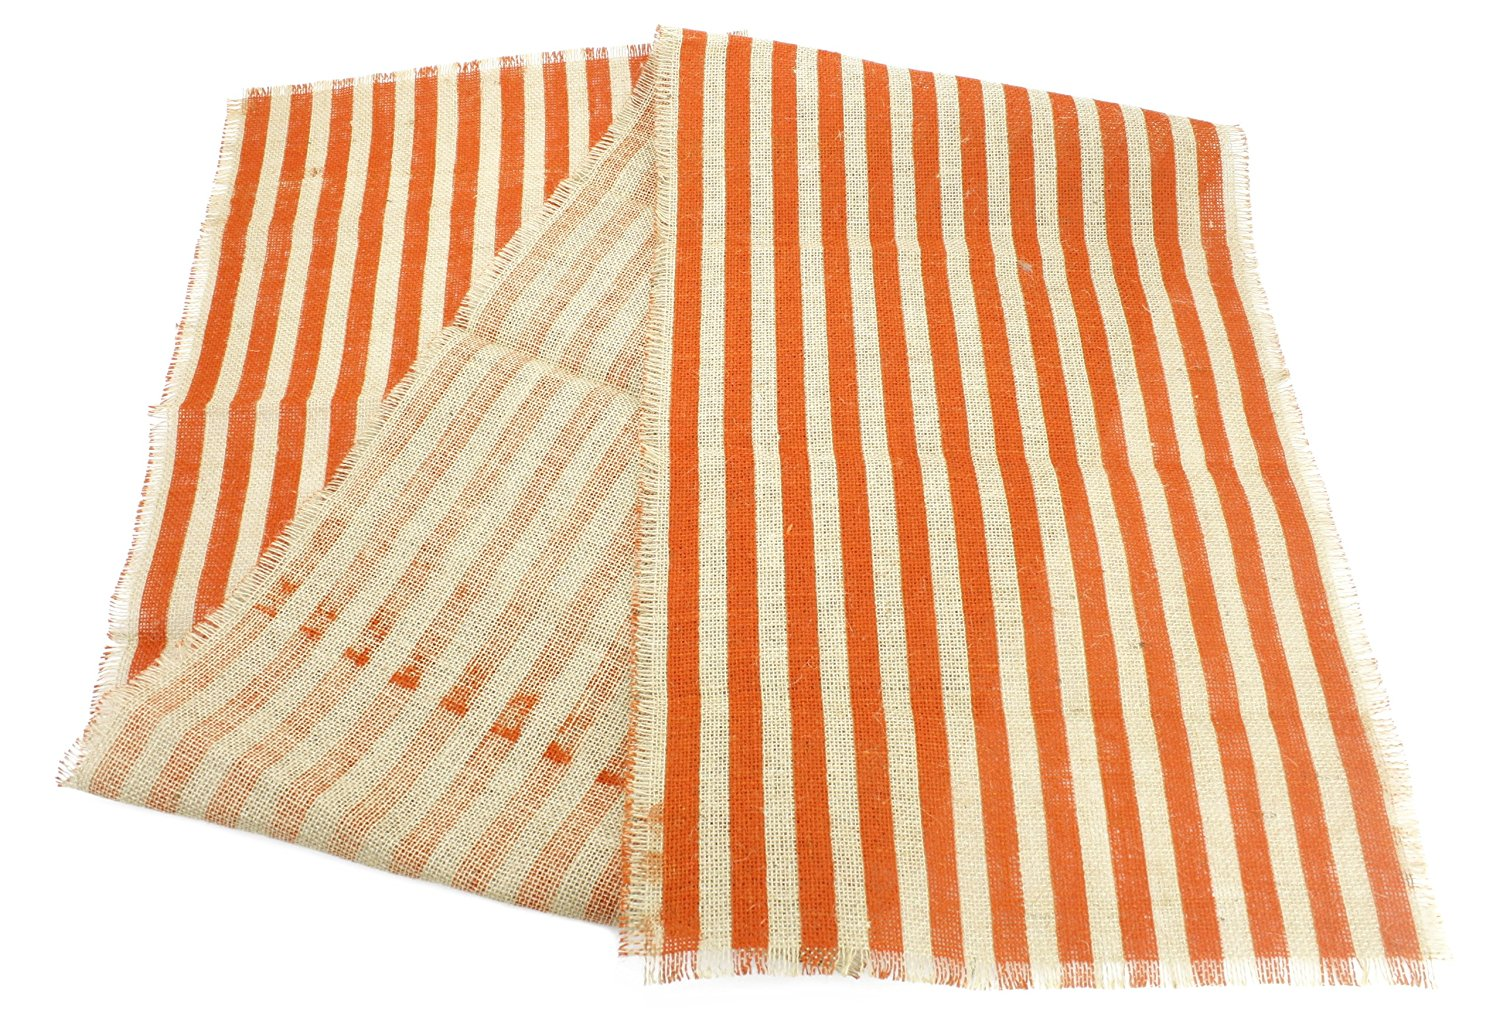 15-Inch-by-72-Inch Striped Burlap Table Runner, Natural + Orange